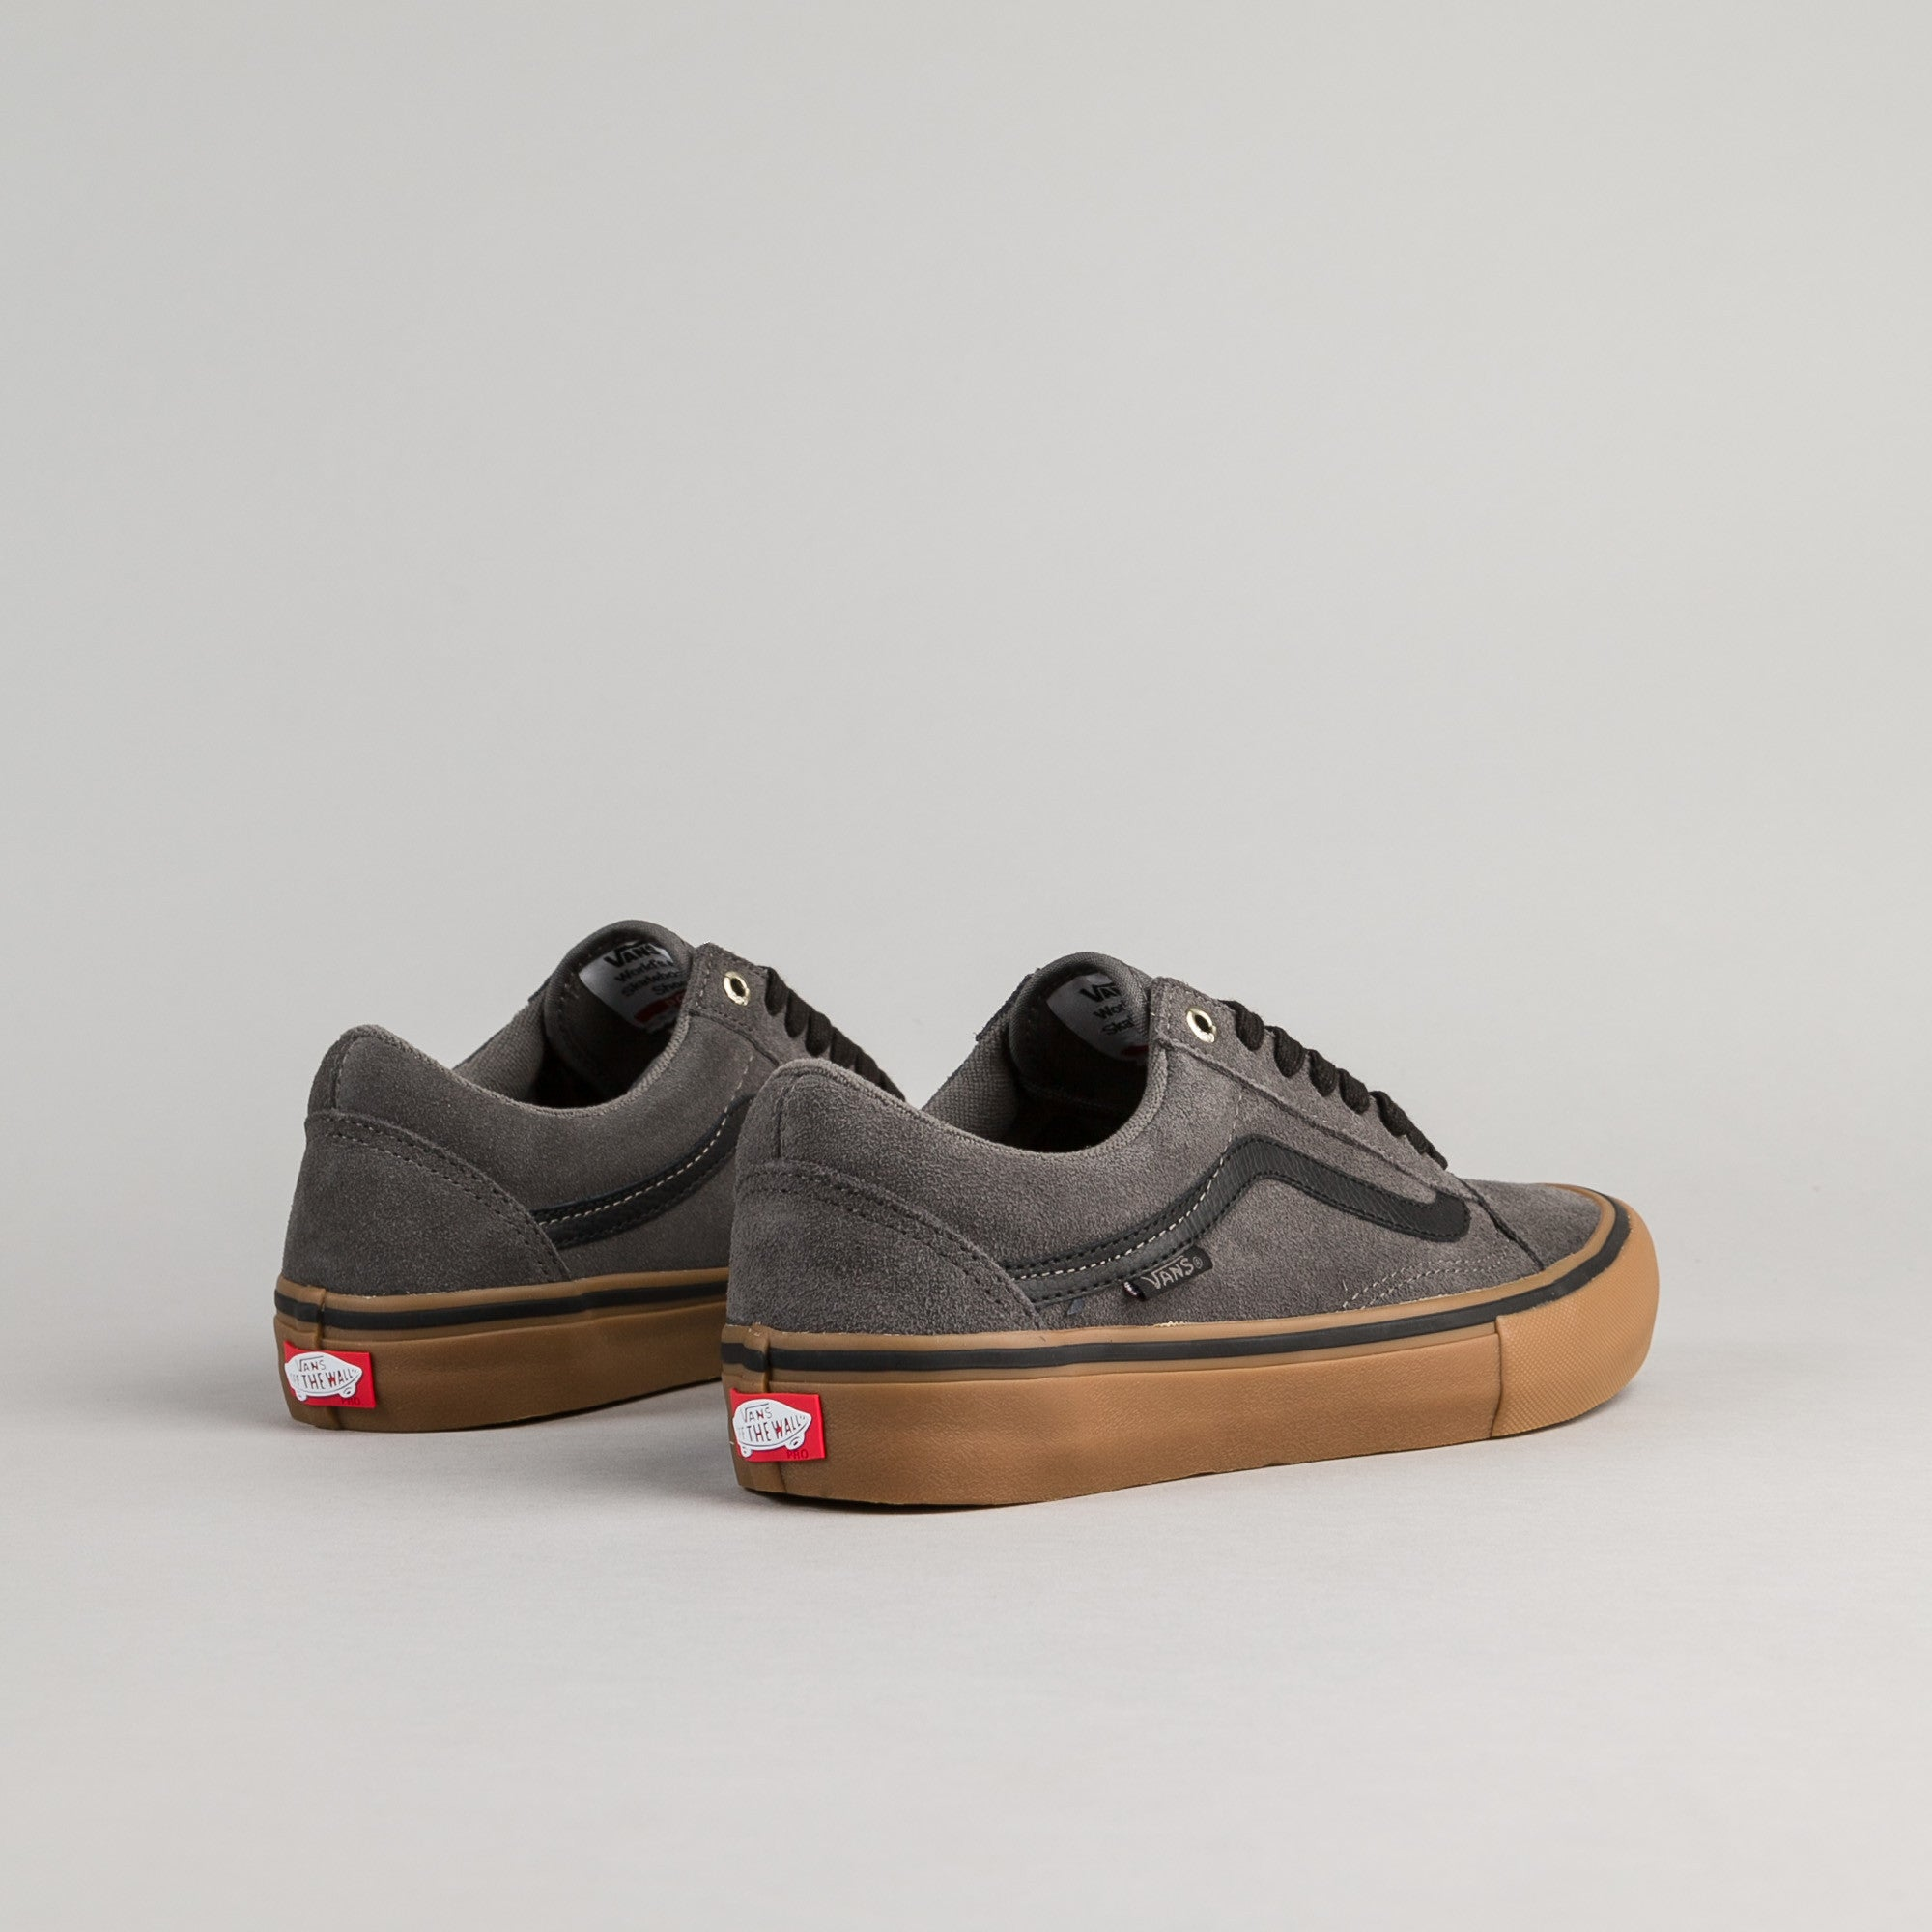 148aa3d0be ... Vans Old Skool Pro Shoes - Grey   Black   Gum ...